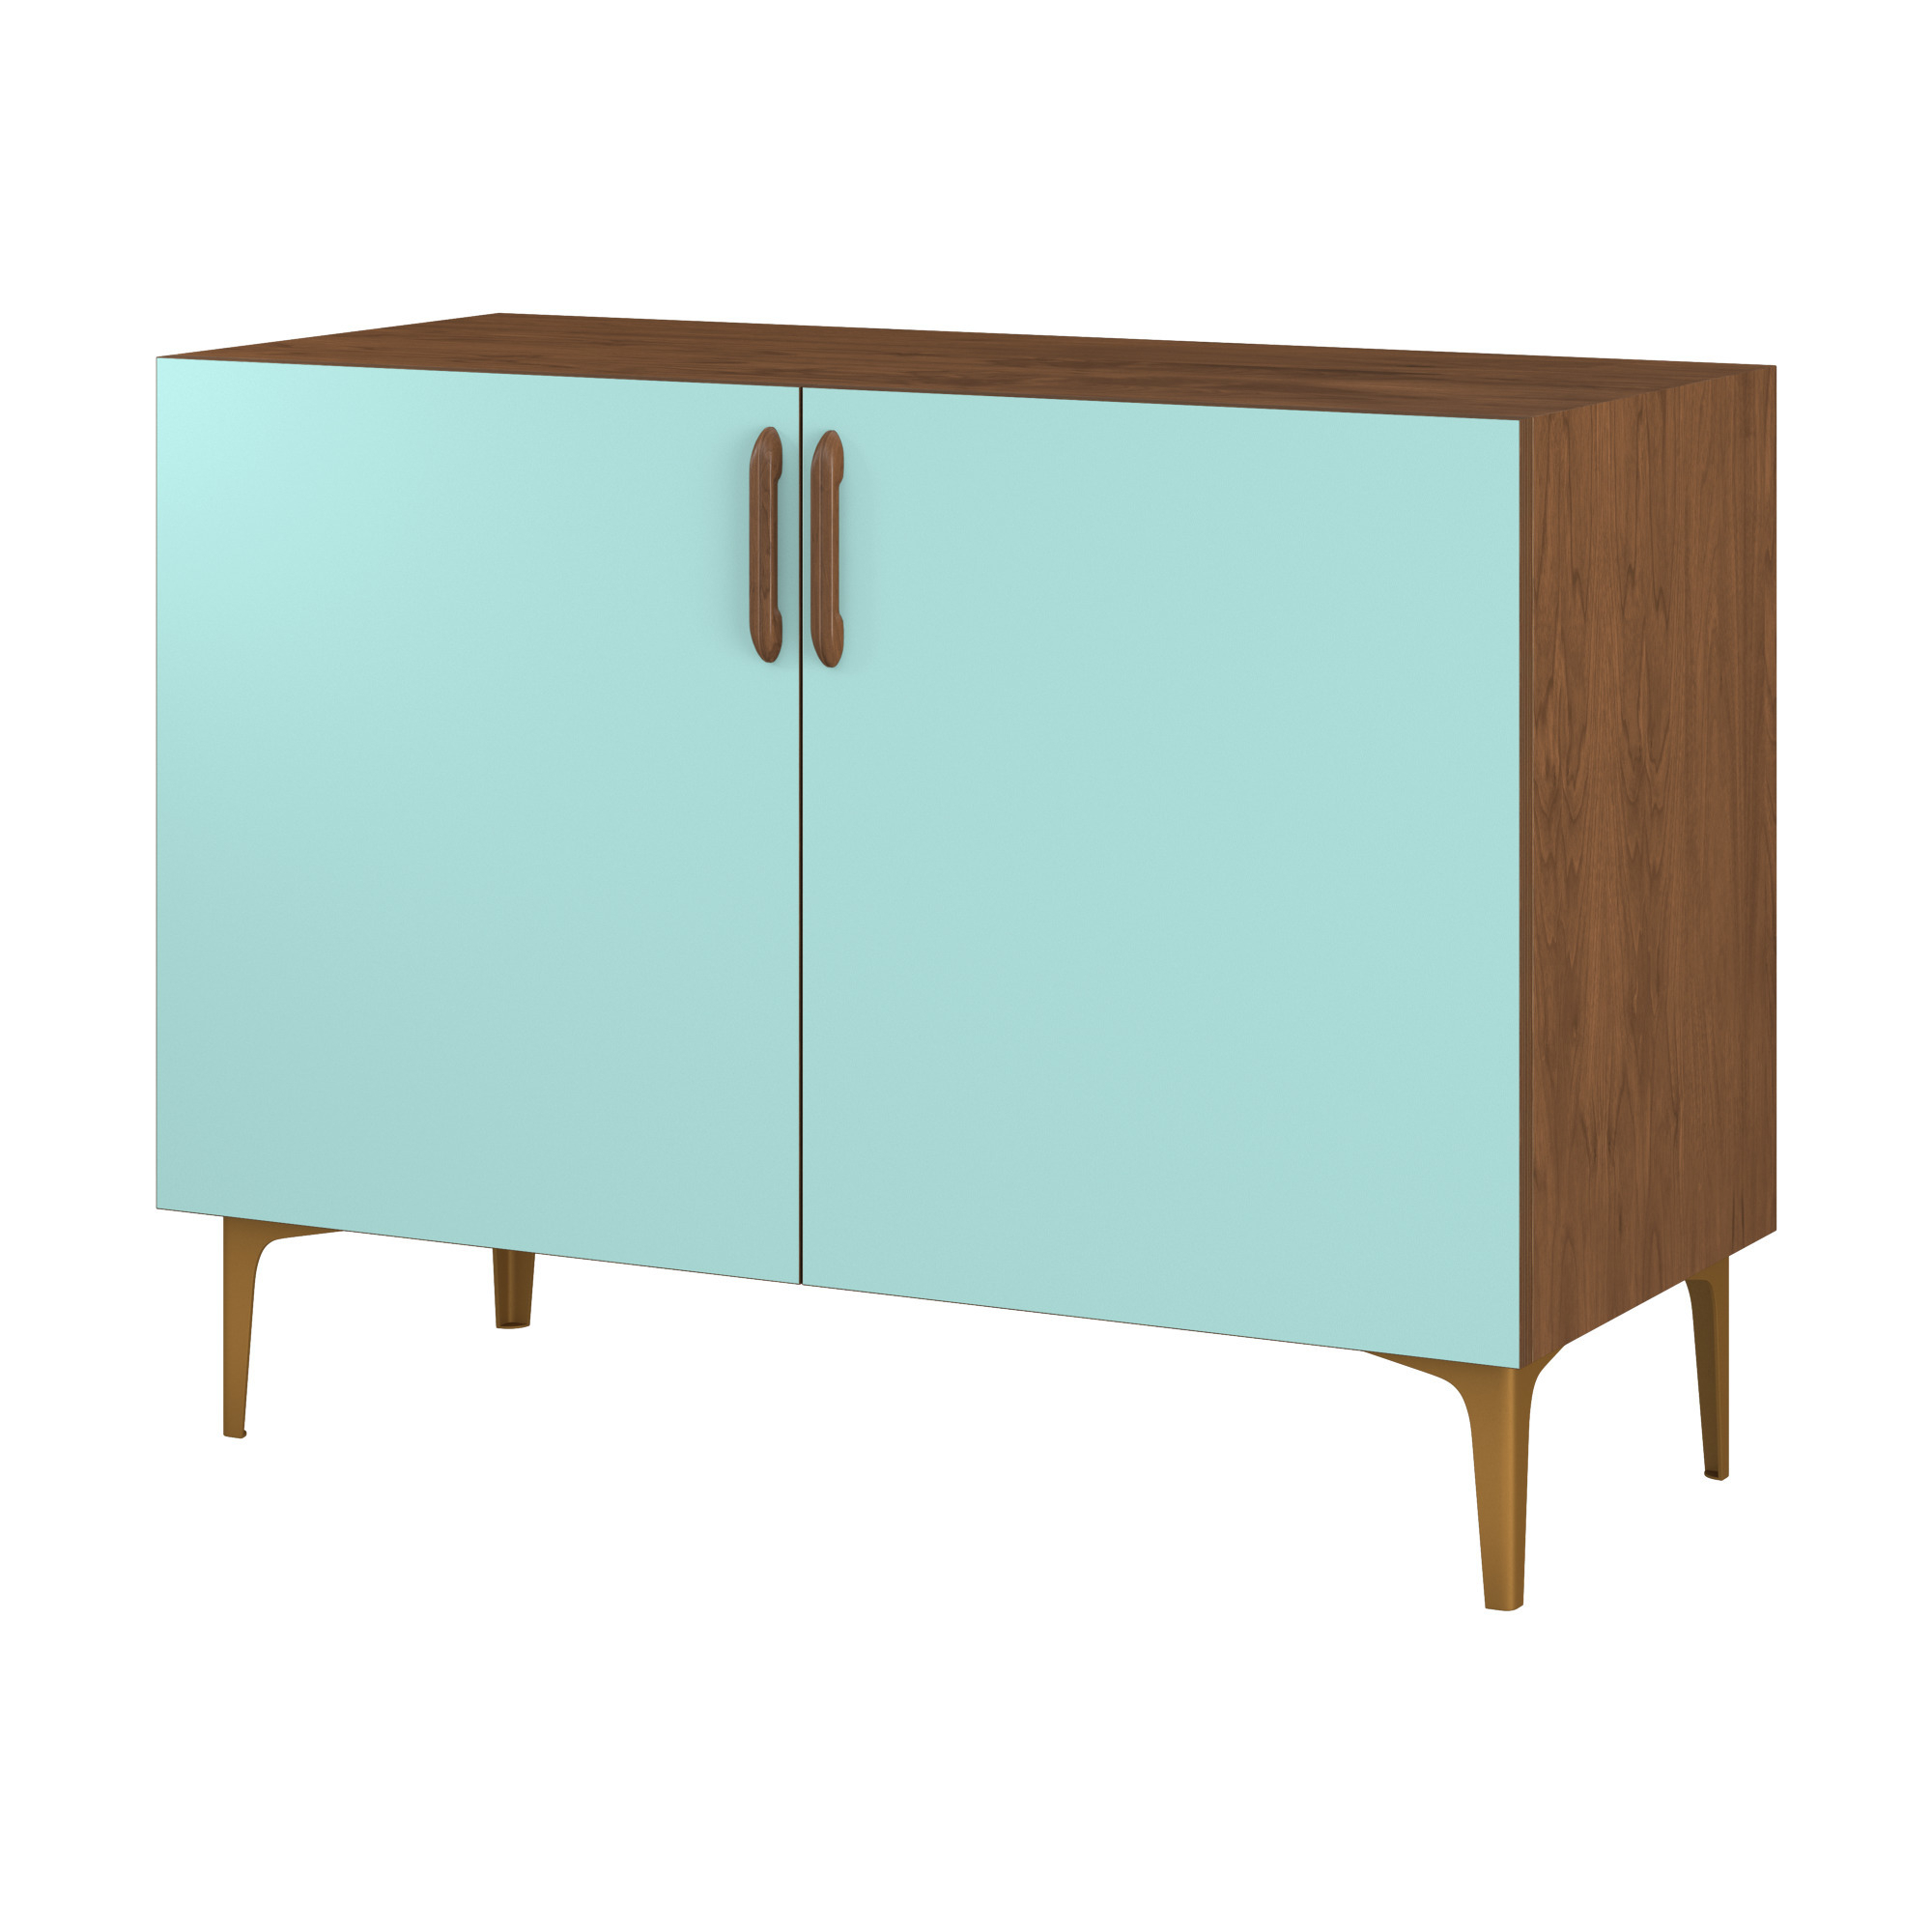 Customize Credenzas | Snugsquare Inside Southwest Pink Credenzas (View 2 of 20)